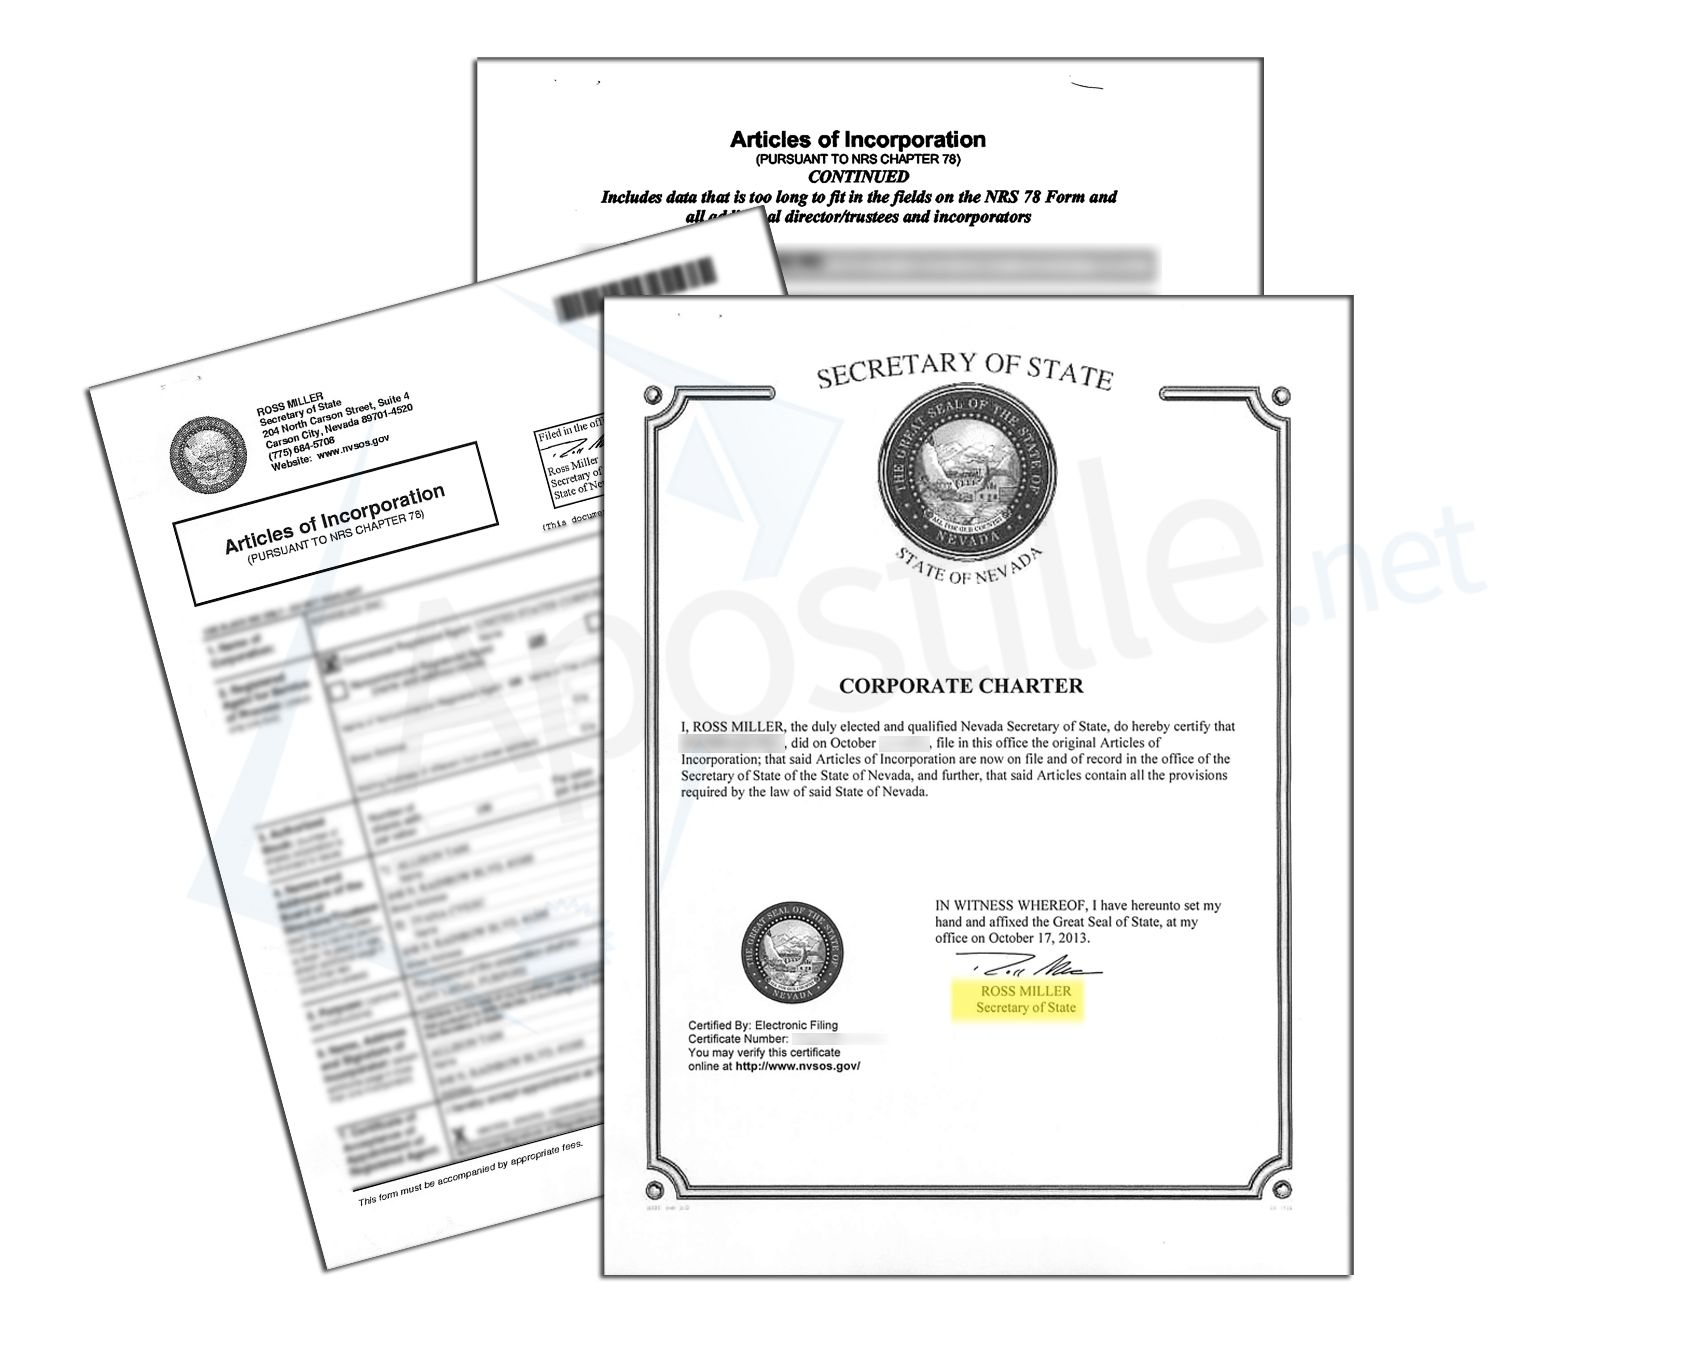 State Of Nevada Corporate Charter And Articles Of Incorporation Certificate Issued By Ross Miller Secr Play Money Template Money Template Excel Budget Template